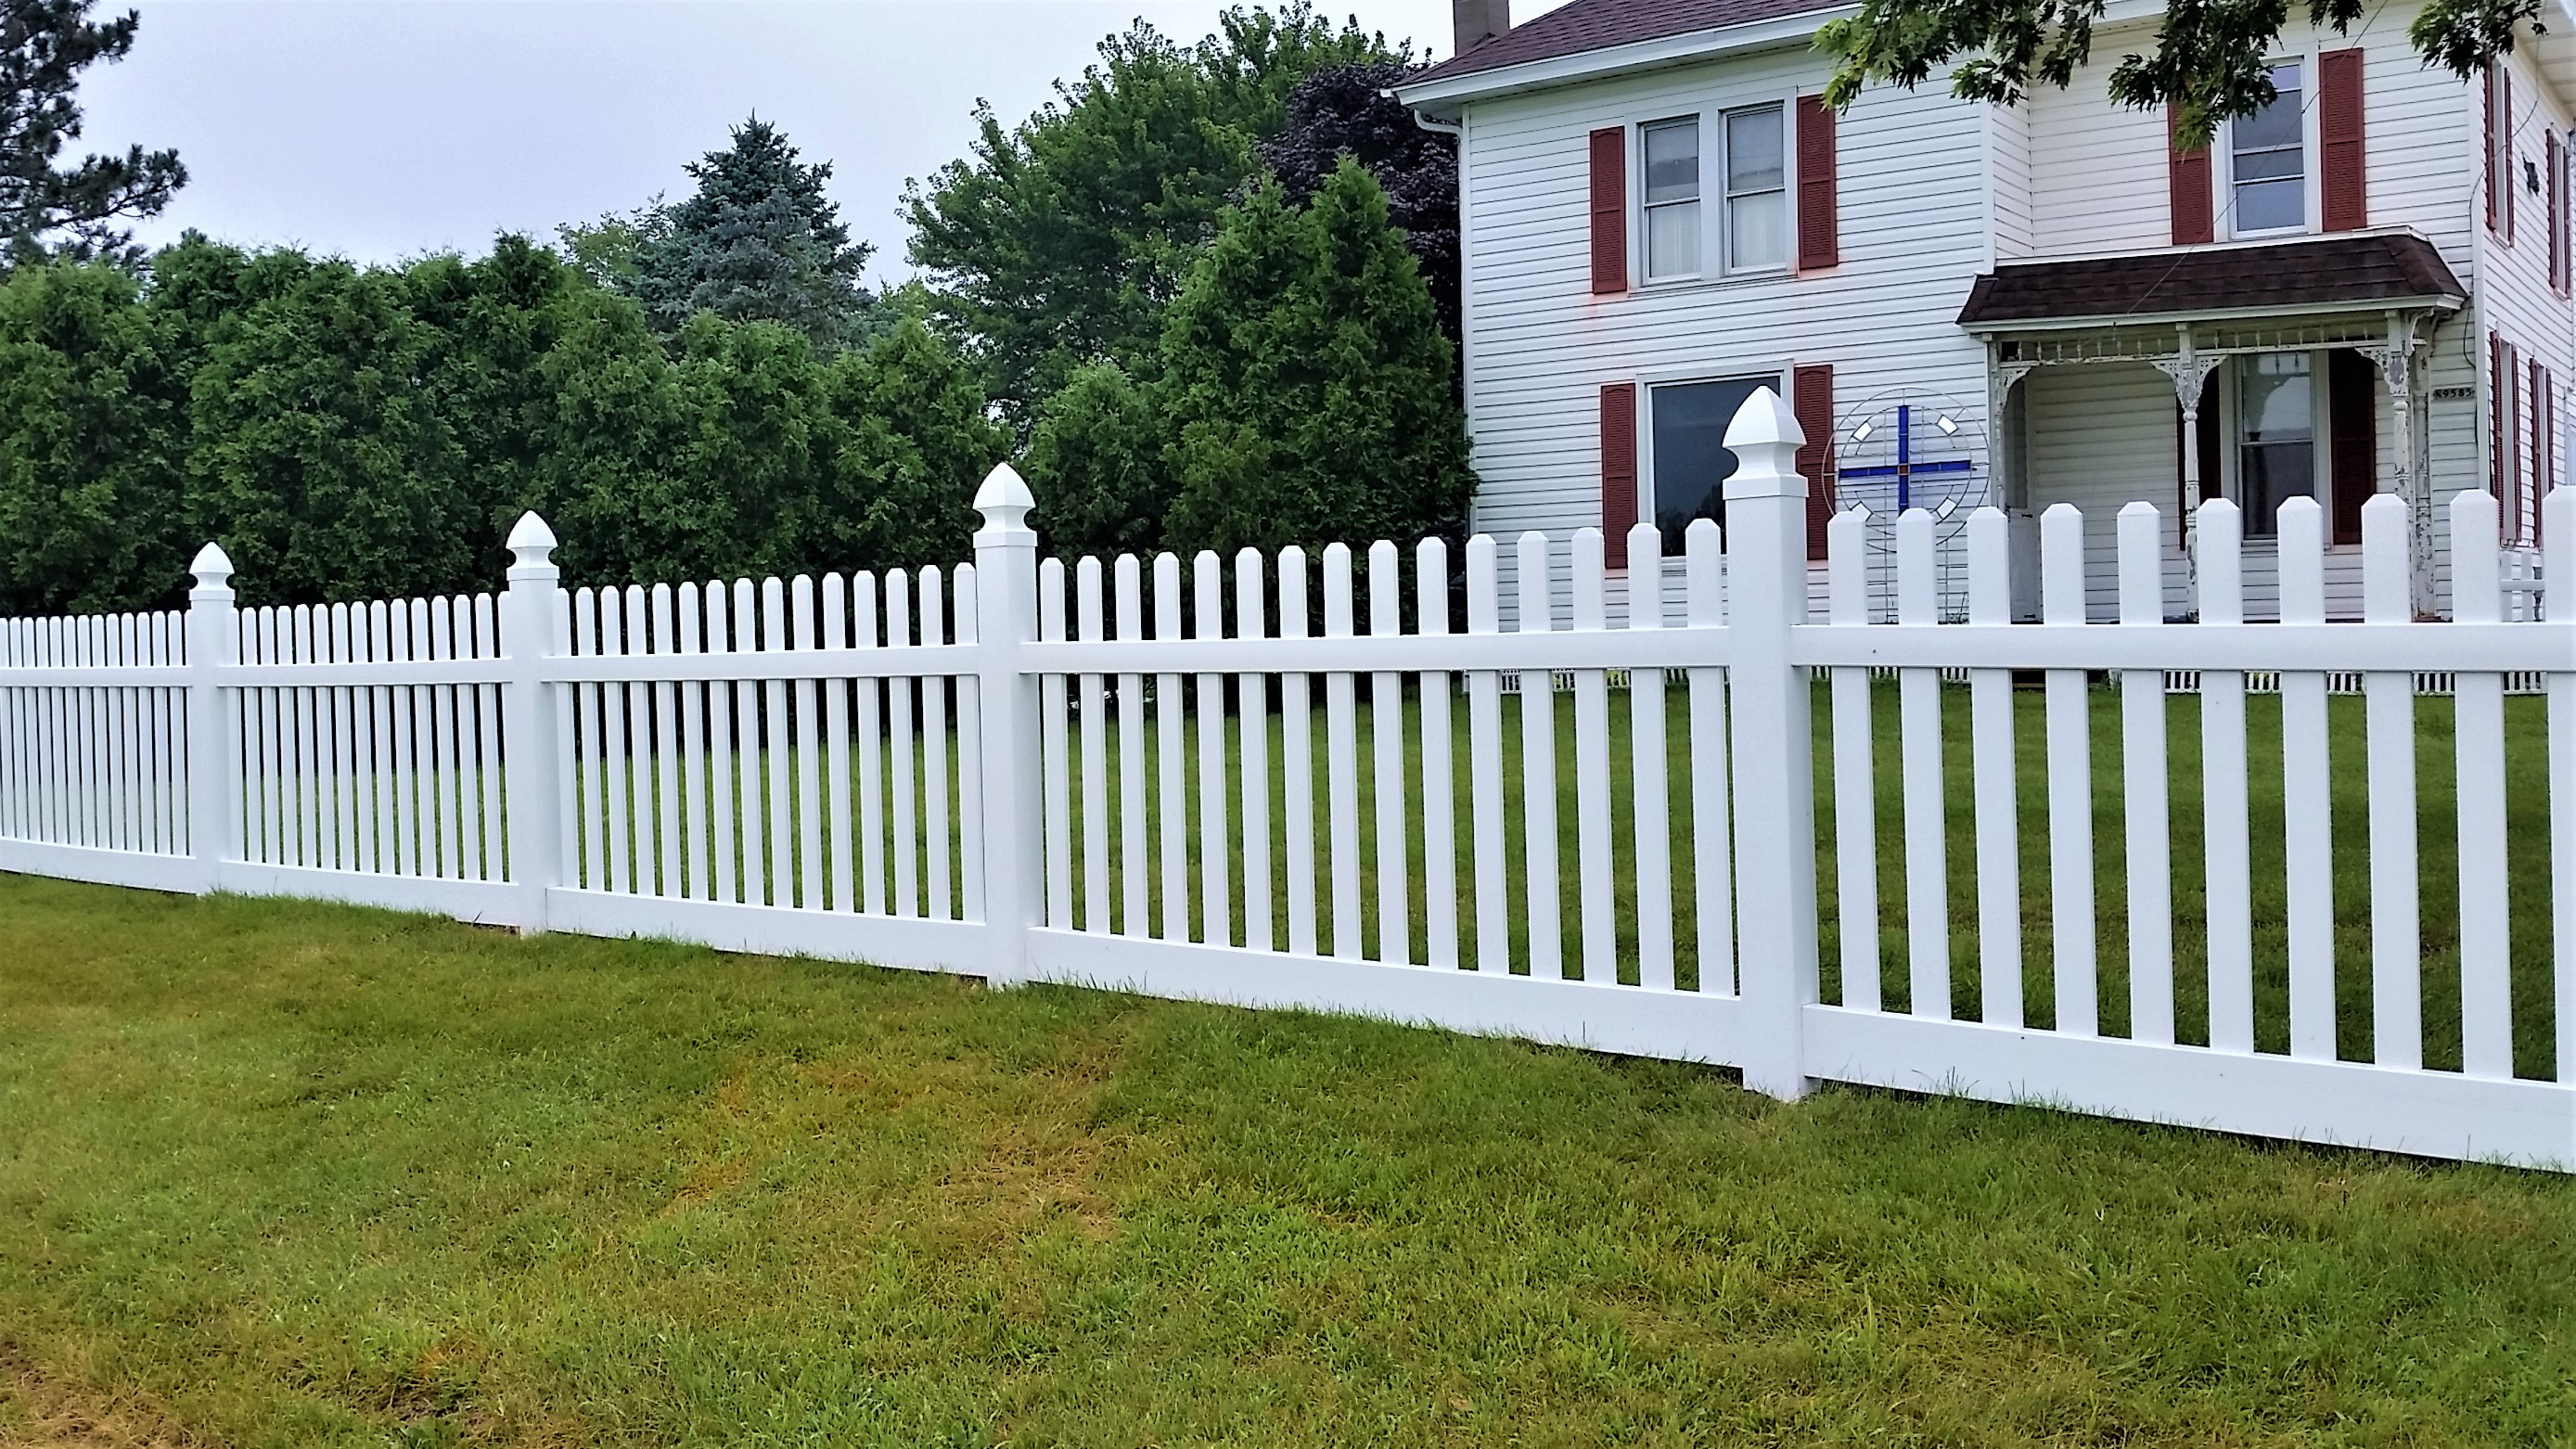 4 ft Vinyl Straight Picket Fence with Gothic Cap - Behl Fence LLC